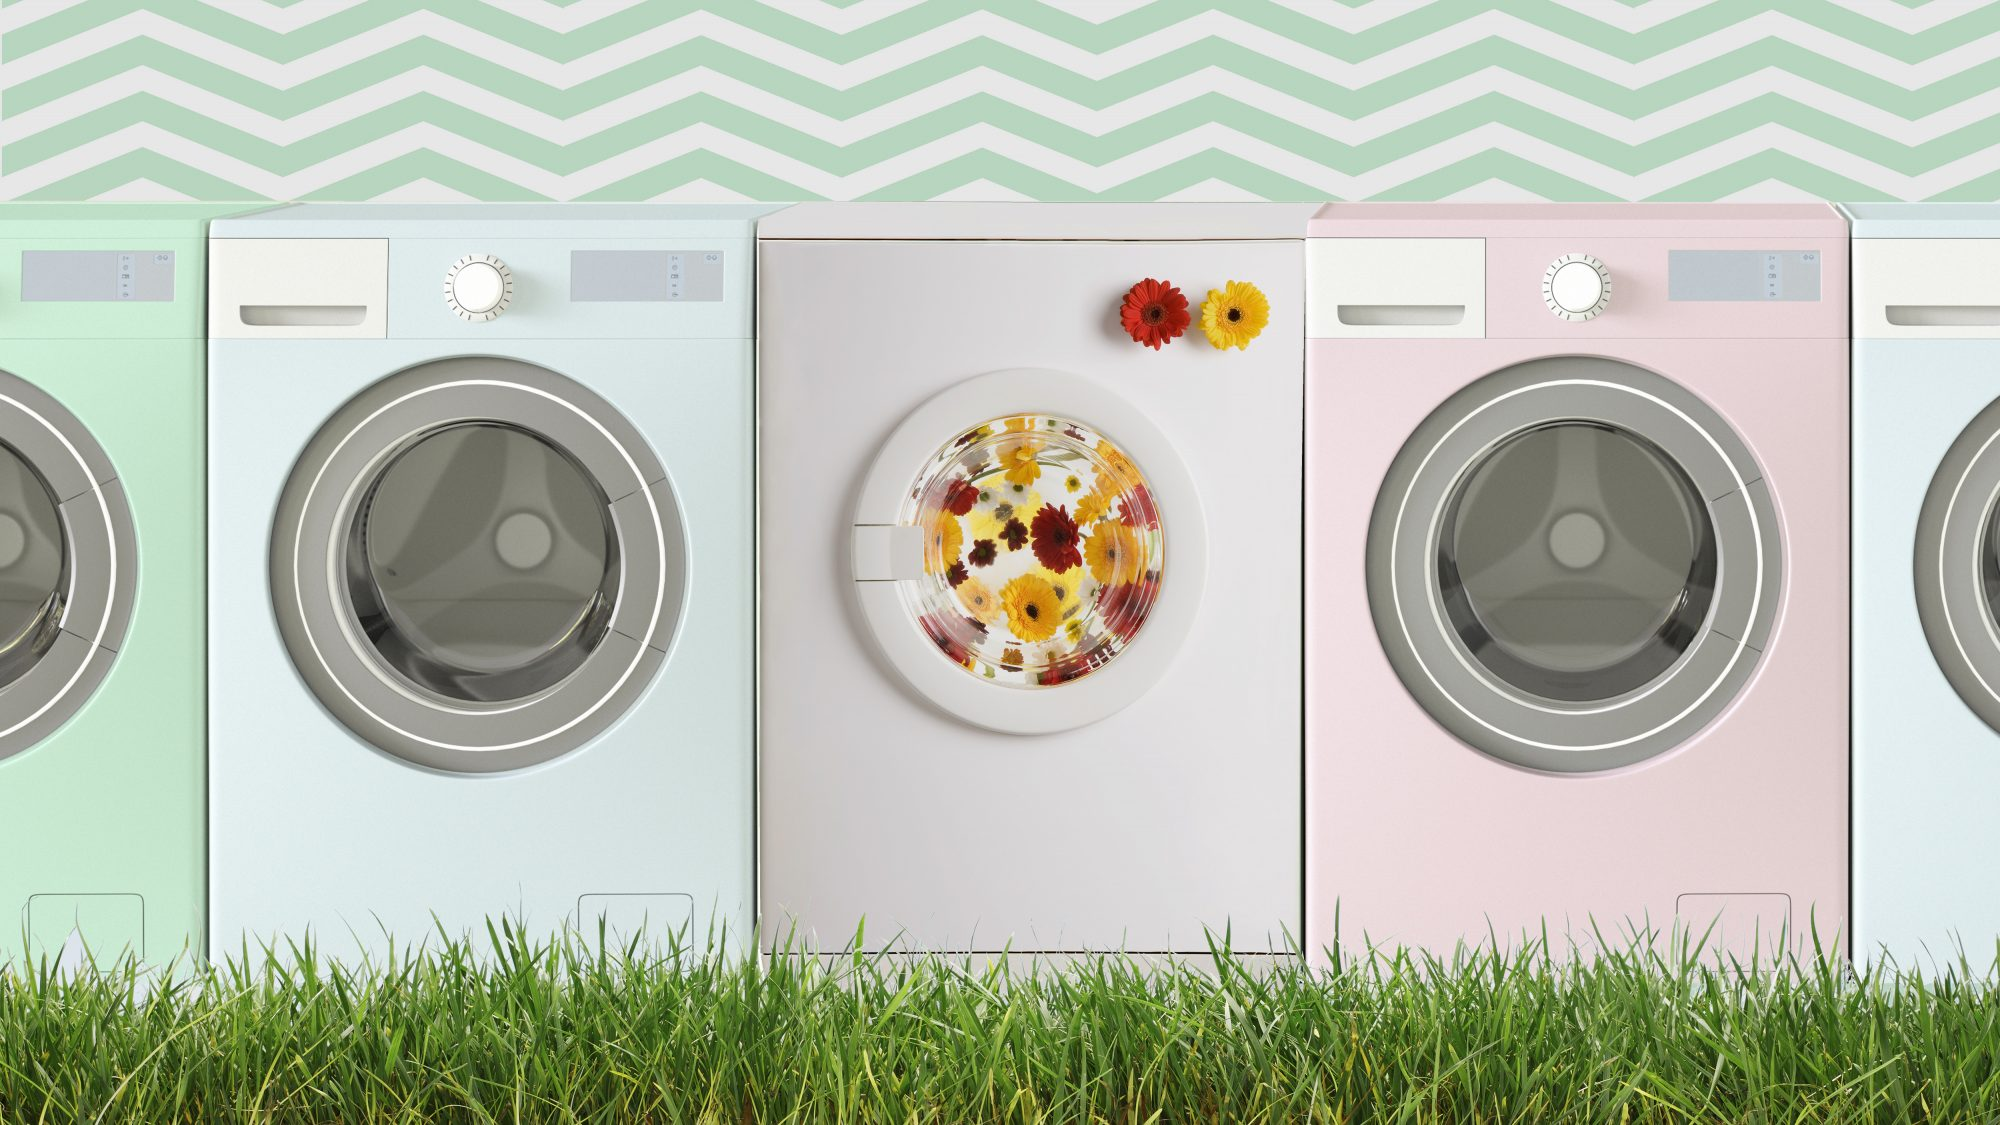 Chemical-Free Natural Laundry Tips, colorful laundry machines